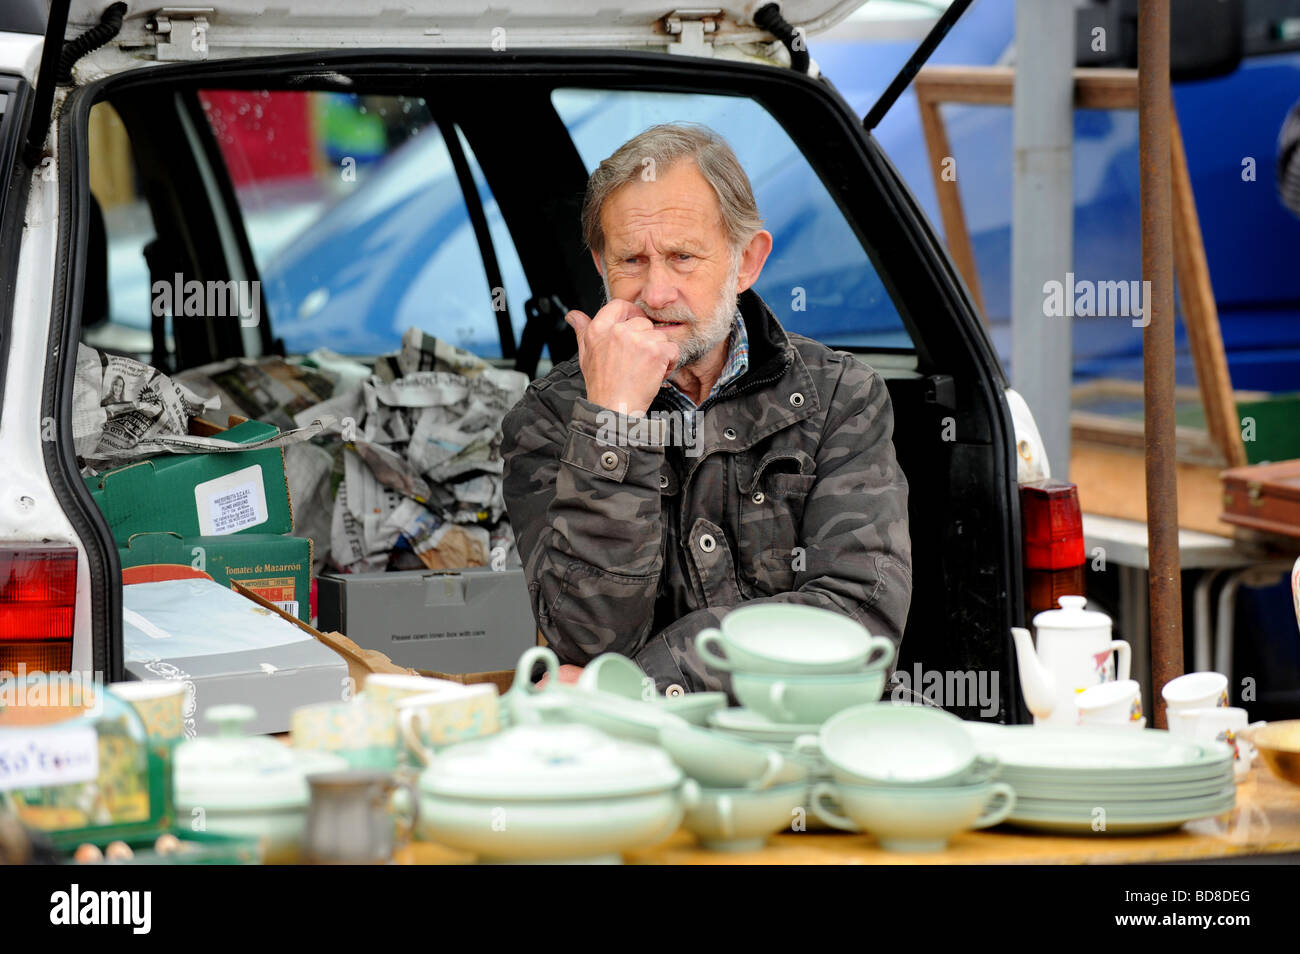 A dealer waits to sell his goods at the Brighton station car boot sale - Stock Image